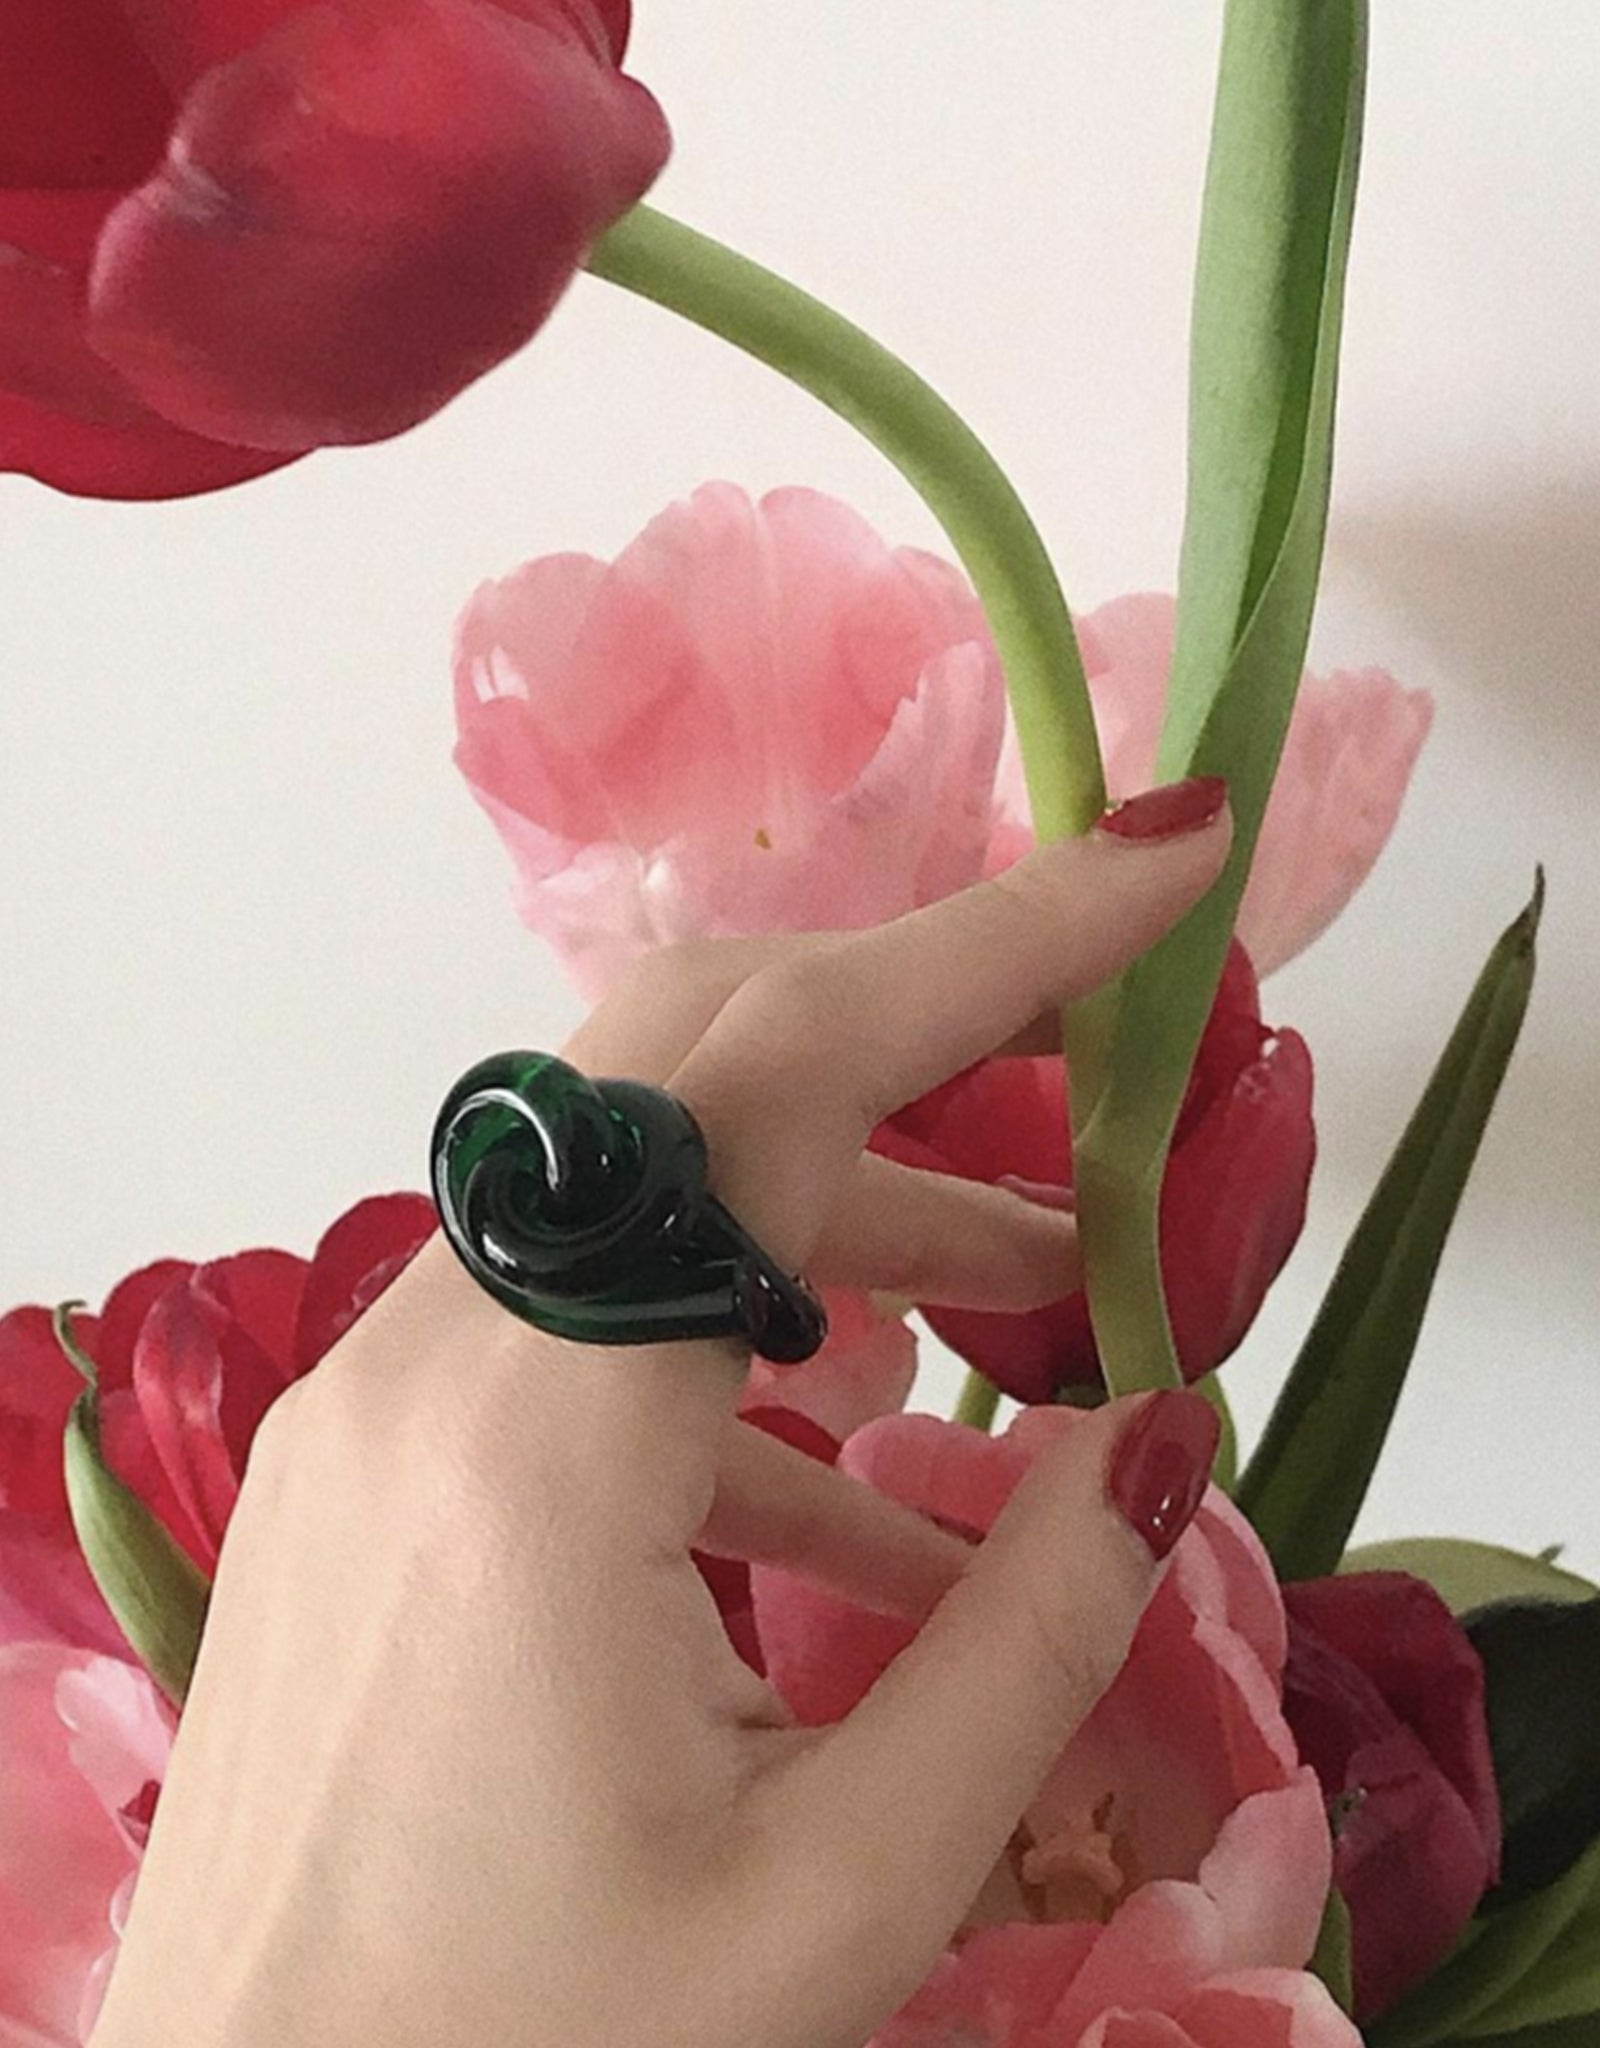 Green Knot Ring by Corey Moranis on model. Available at FAWN Toronto.